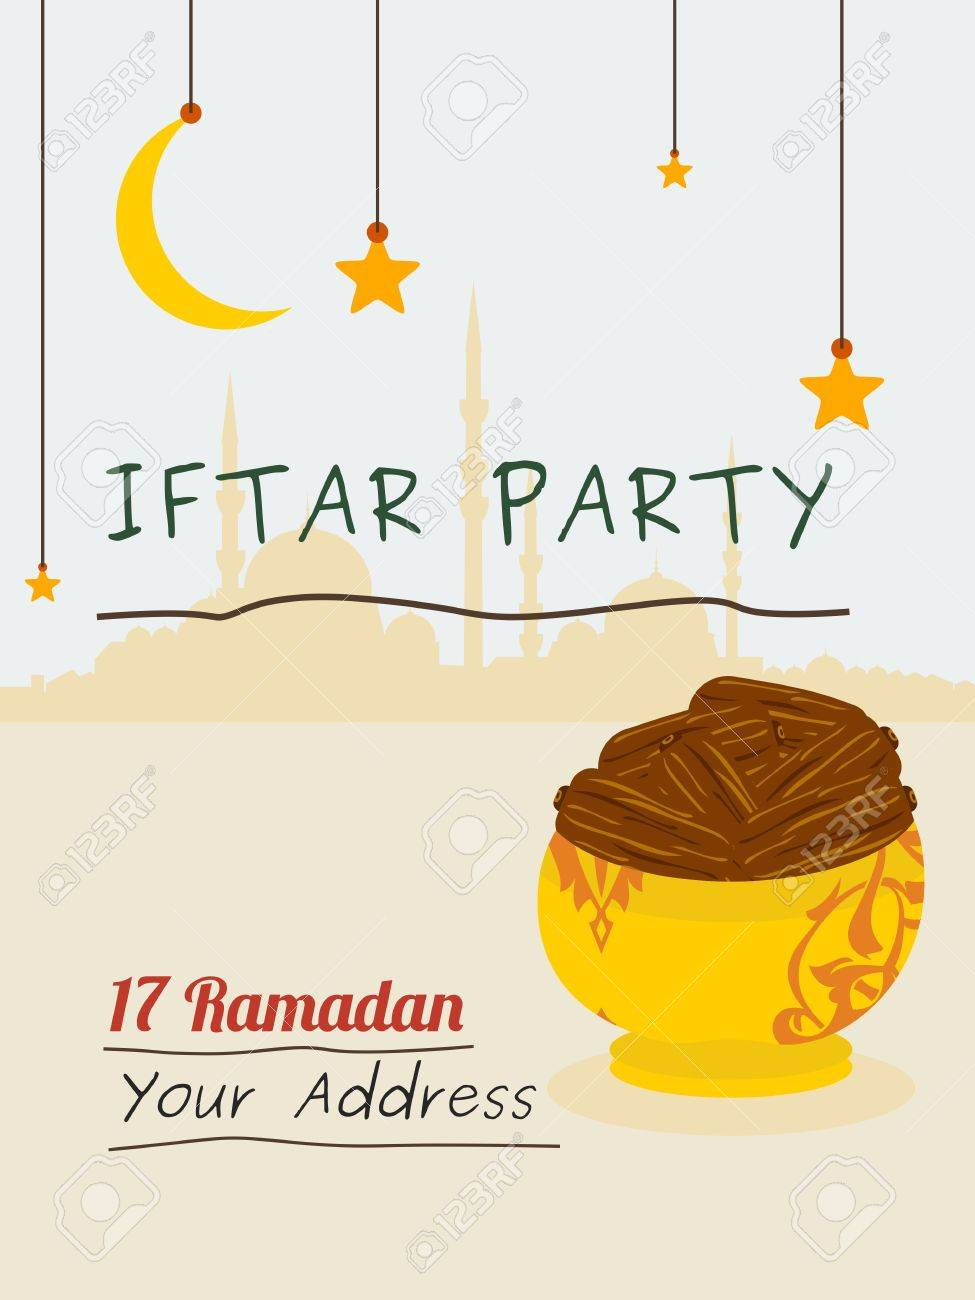 Editable iftar party vector illustration background for poster editable iftar party vector illustration background for poster or invitation template stock vector 79253512 stopboris Gallery